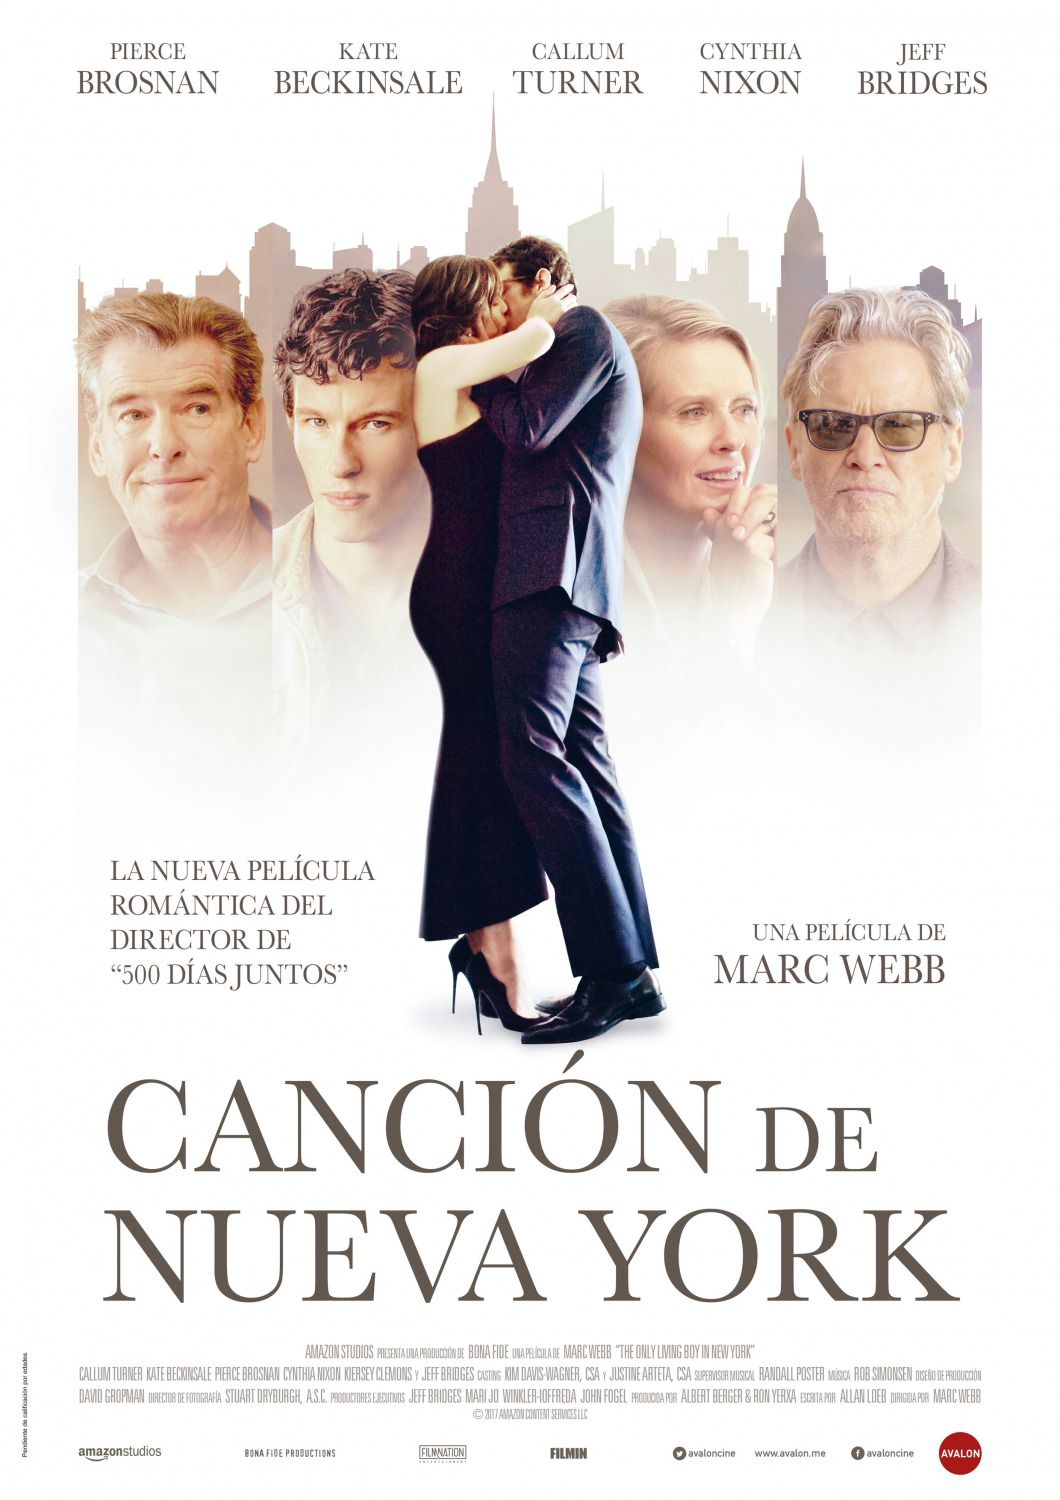 The Only Living Boy in New York - Pierce Brosnan - Kate Beckinsale - Callum Turner - Cynthia Nixon - Jeff Bridges - film poster